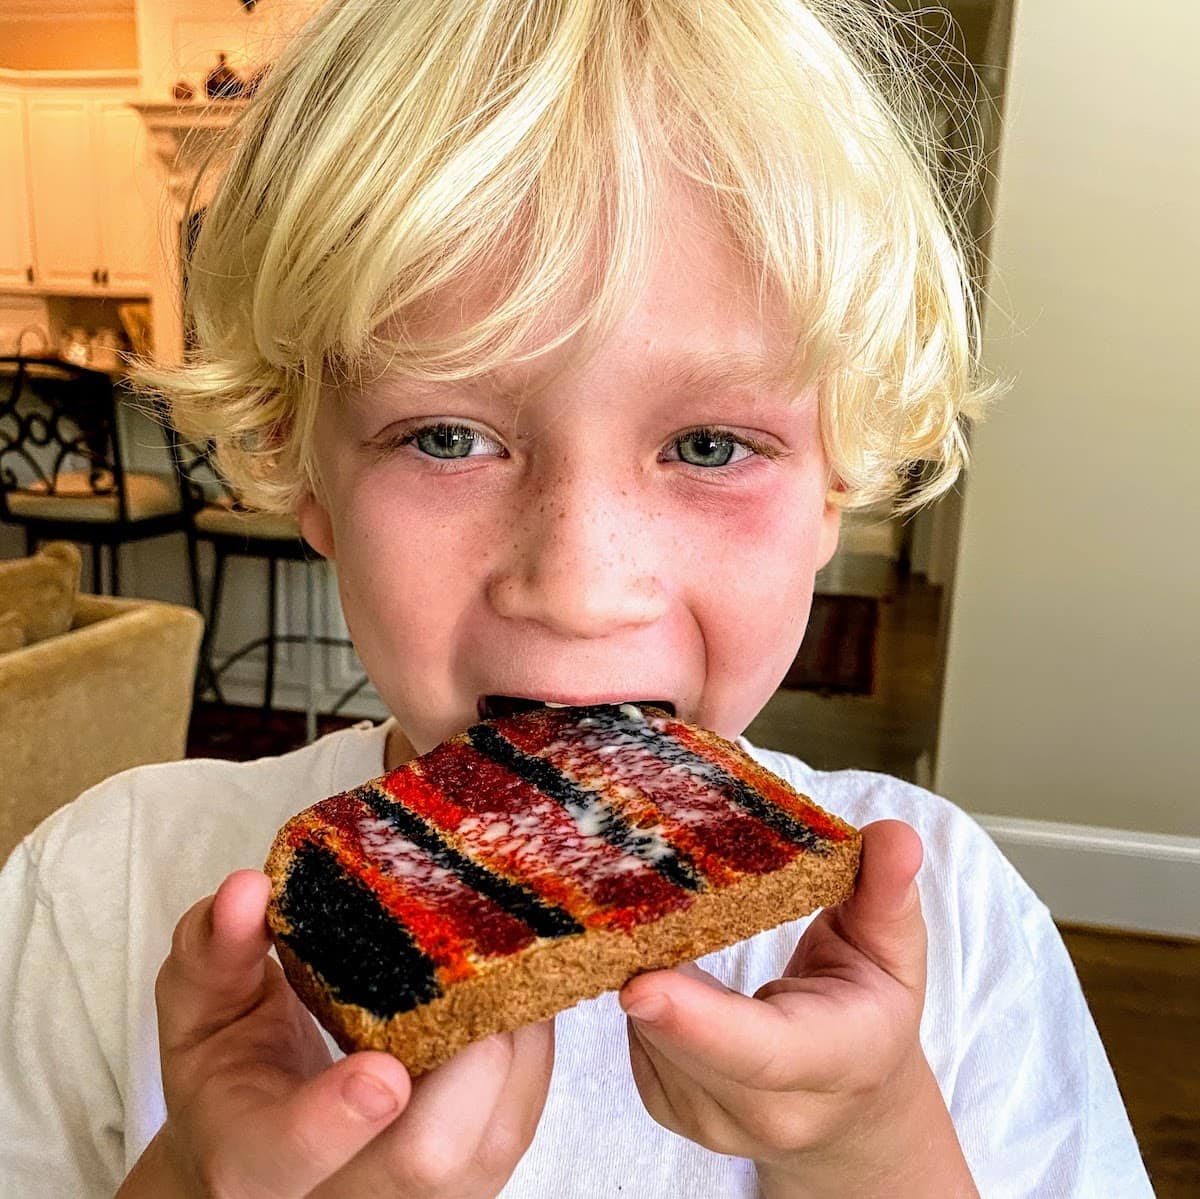 boy eating his painted toast craft